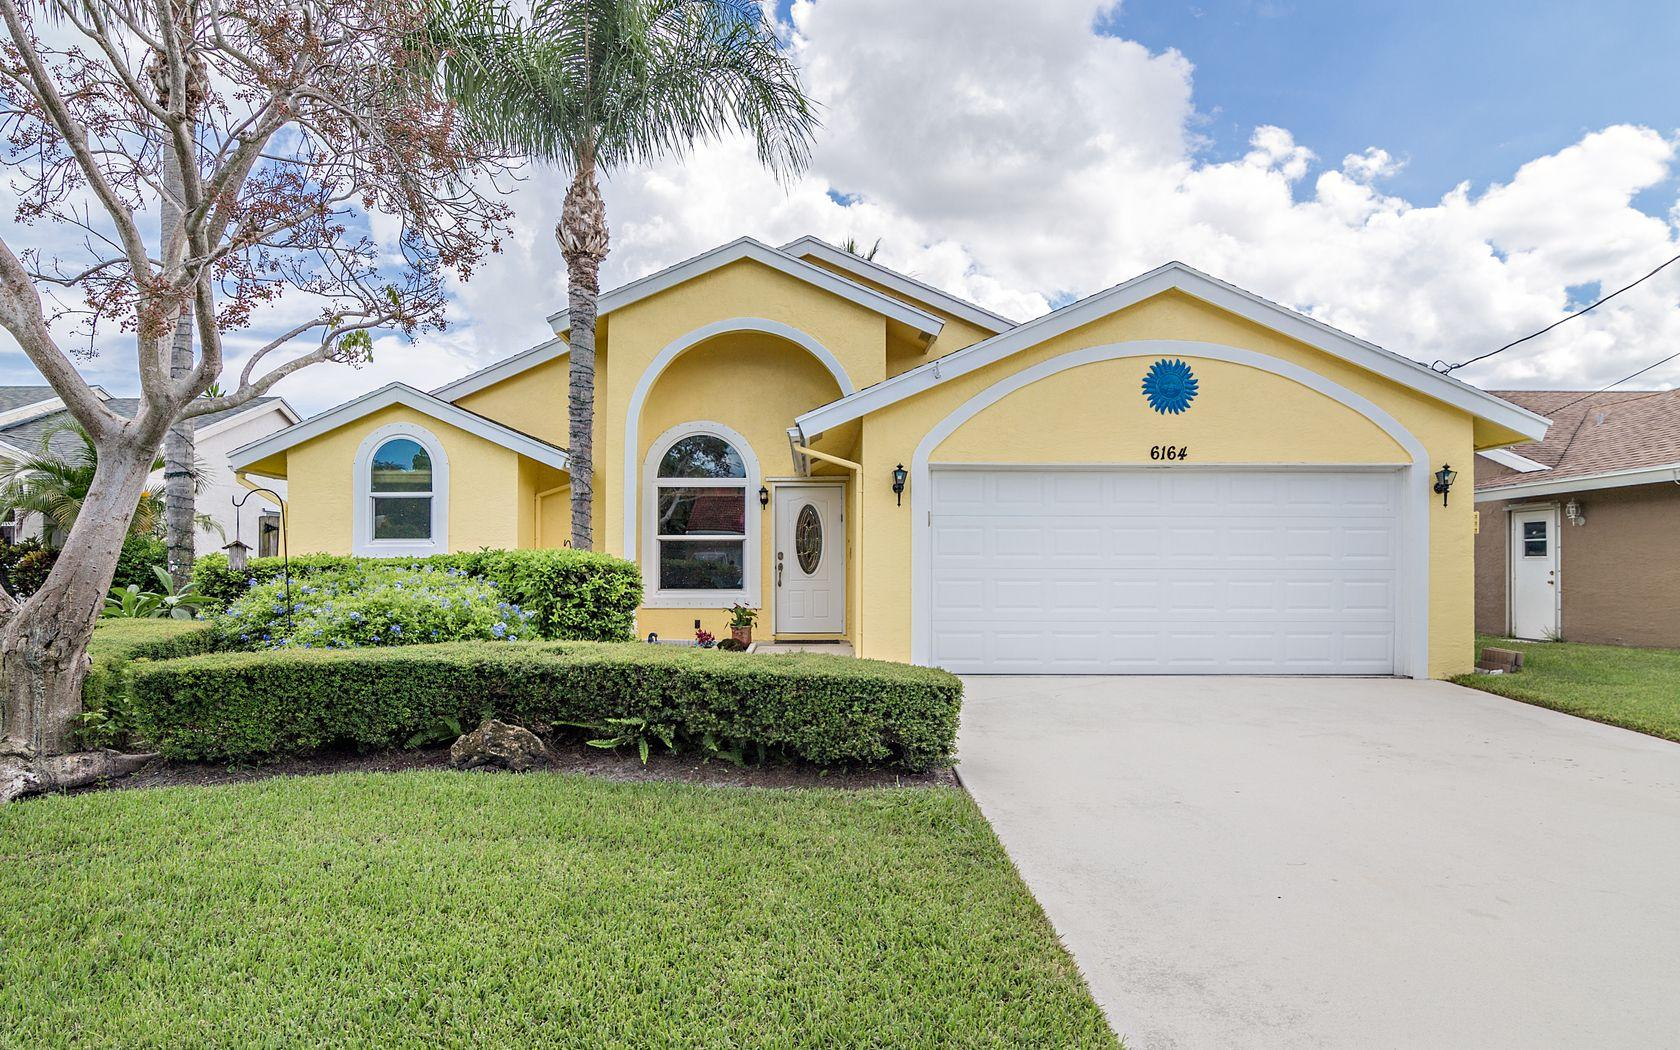 Photo of 6164 Barbara Street, Jupiter, FL 33458